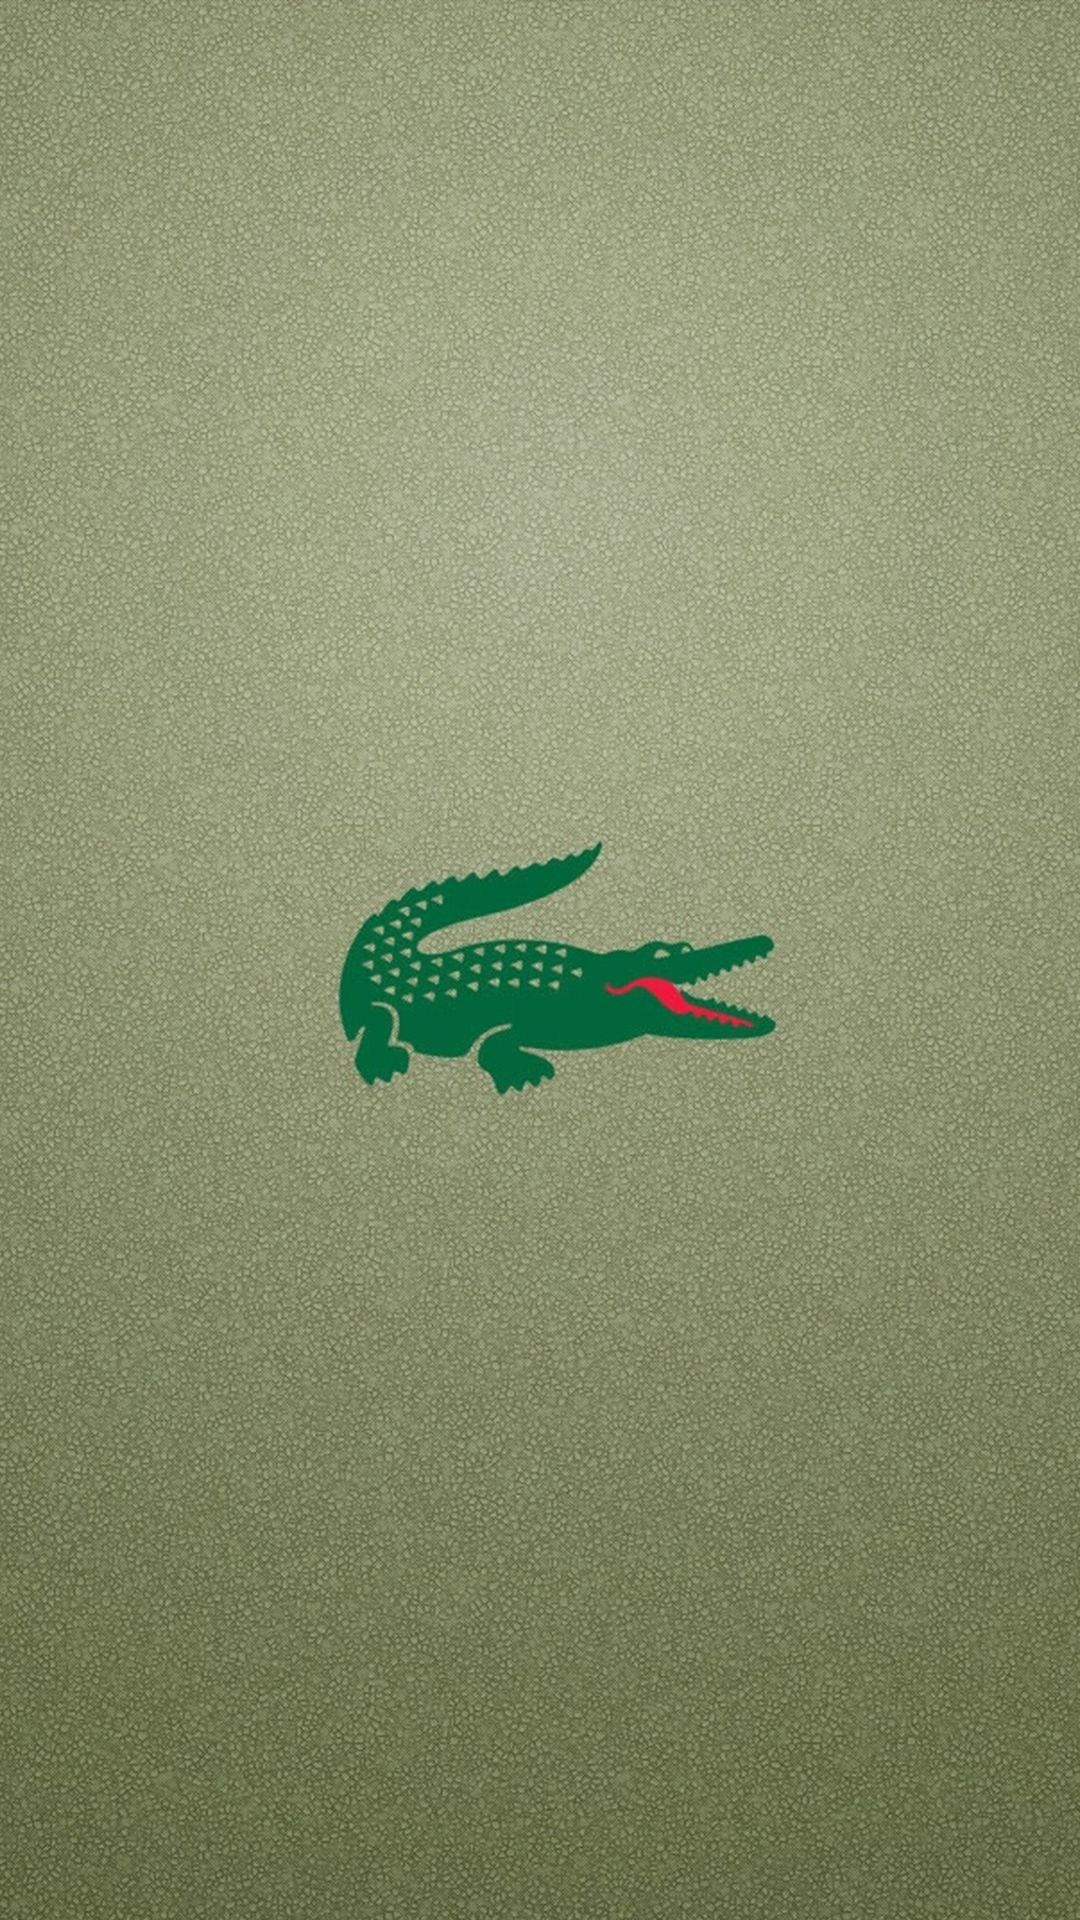 Lacoste iPhone 5 wallpaper